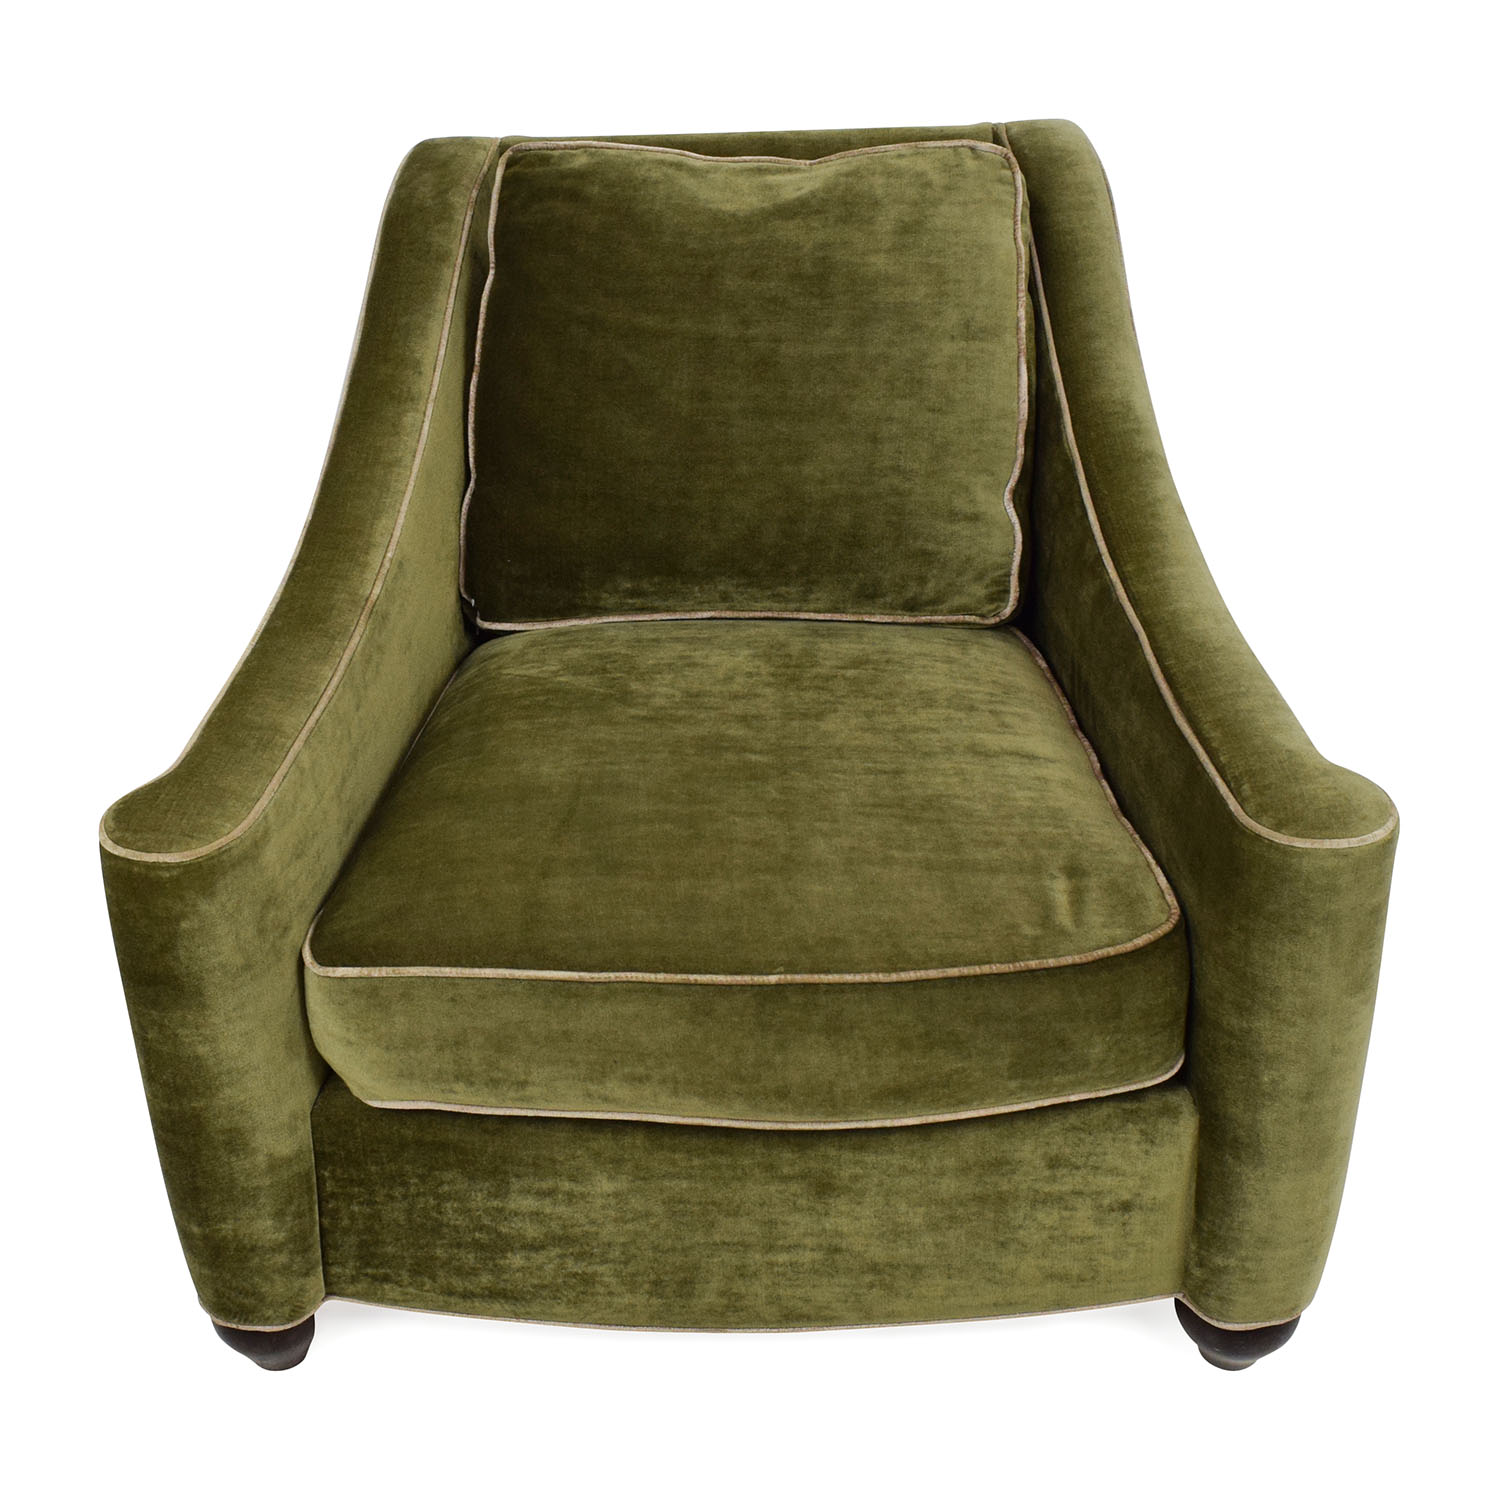 ... Buy Domain Home Classic Chair Domain Home ...